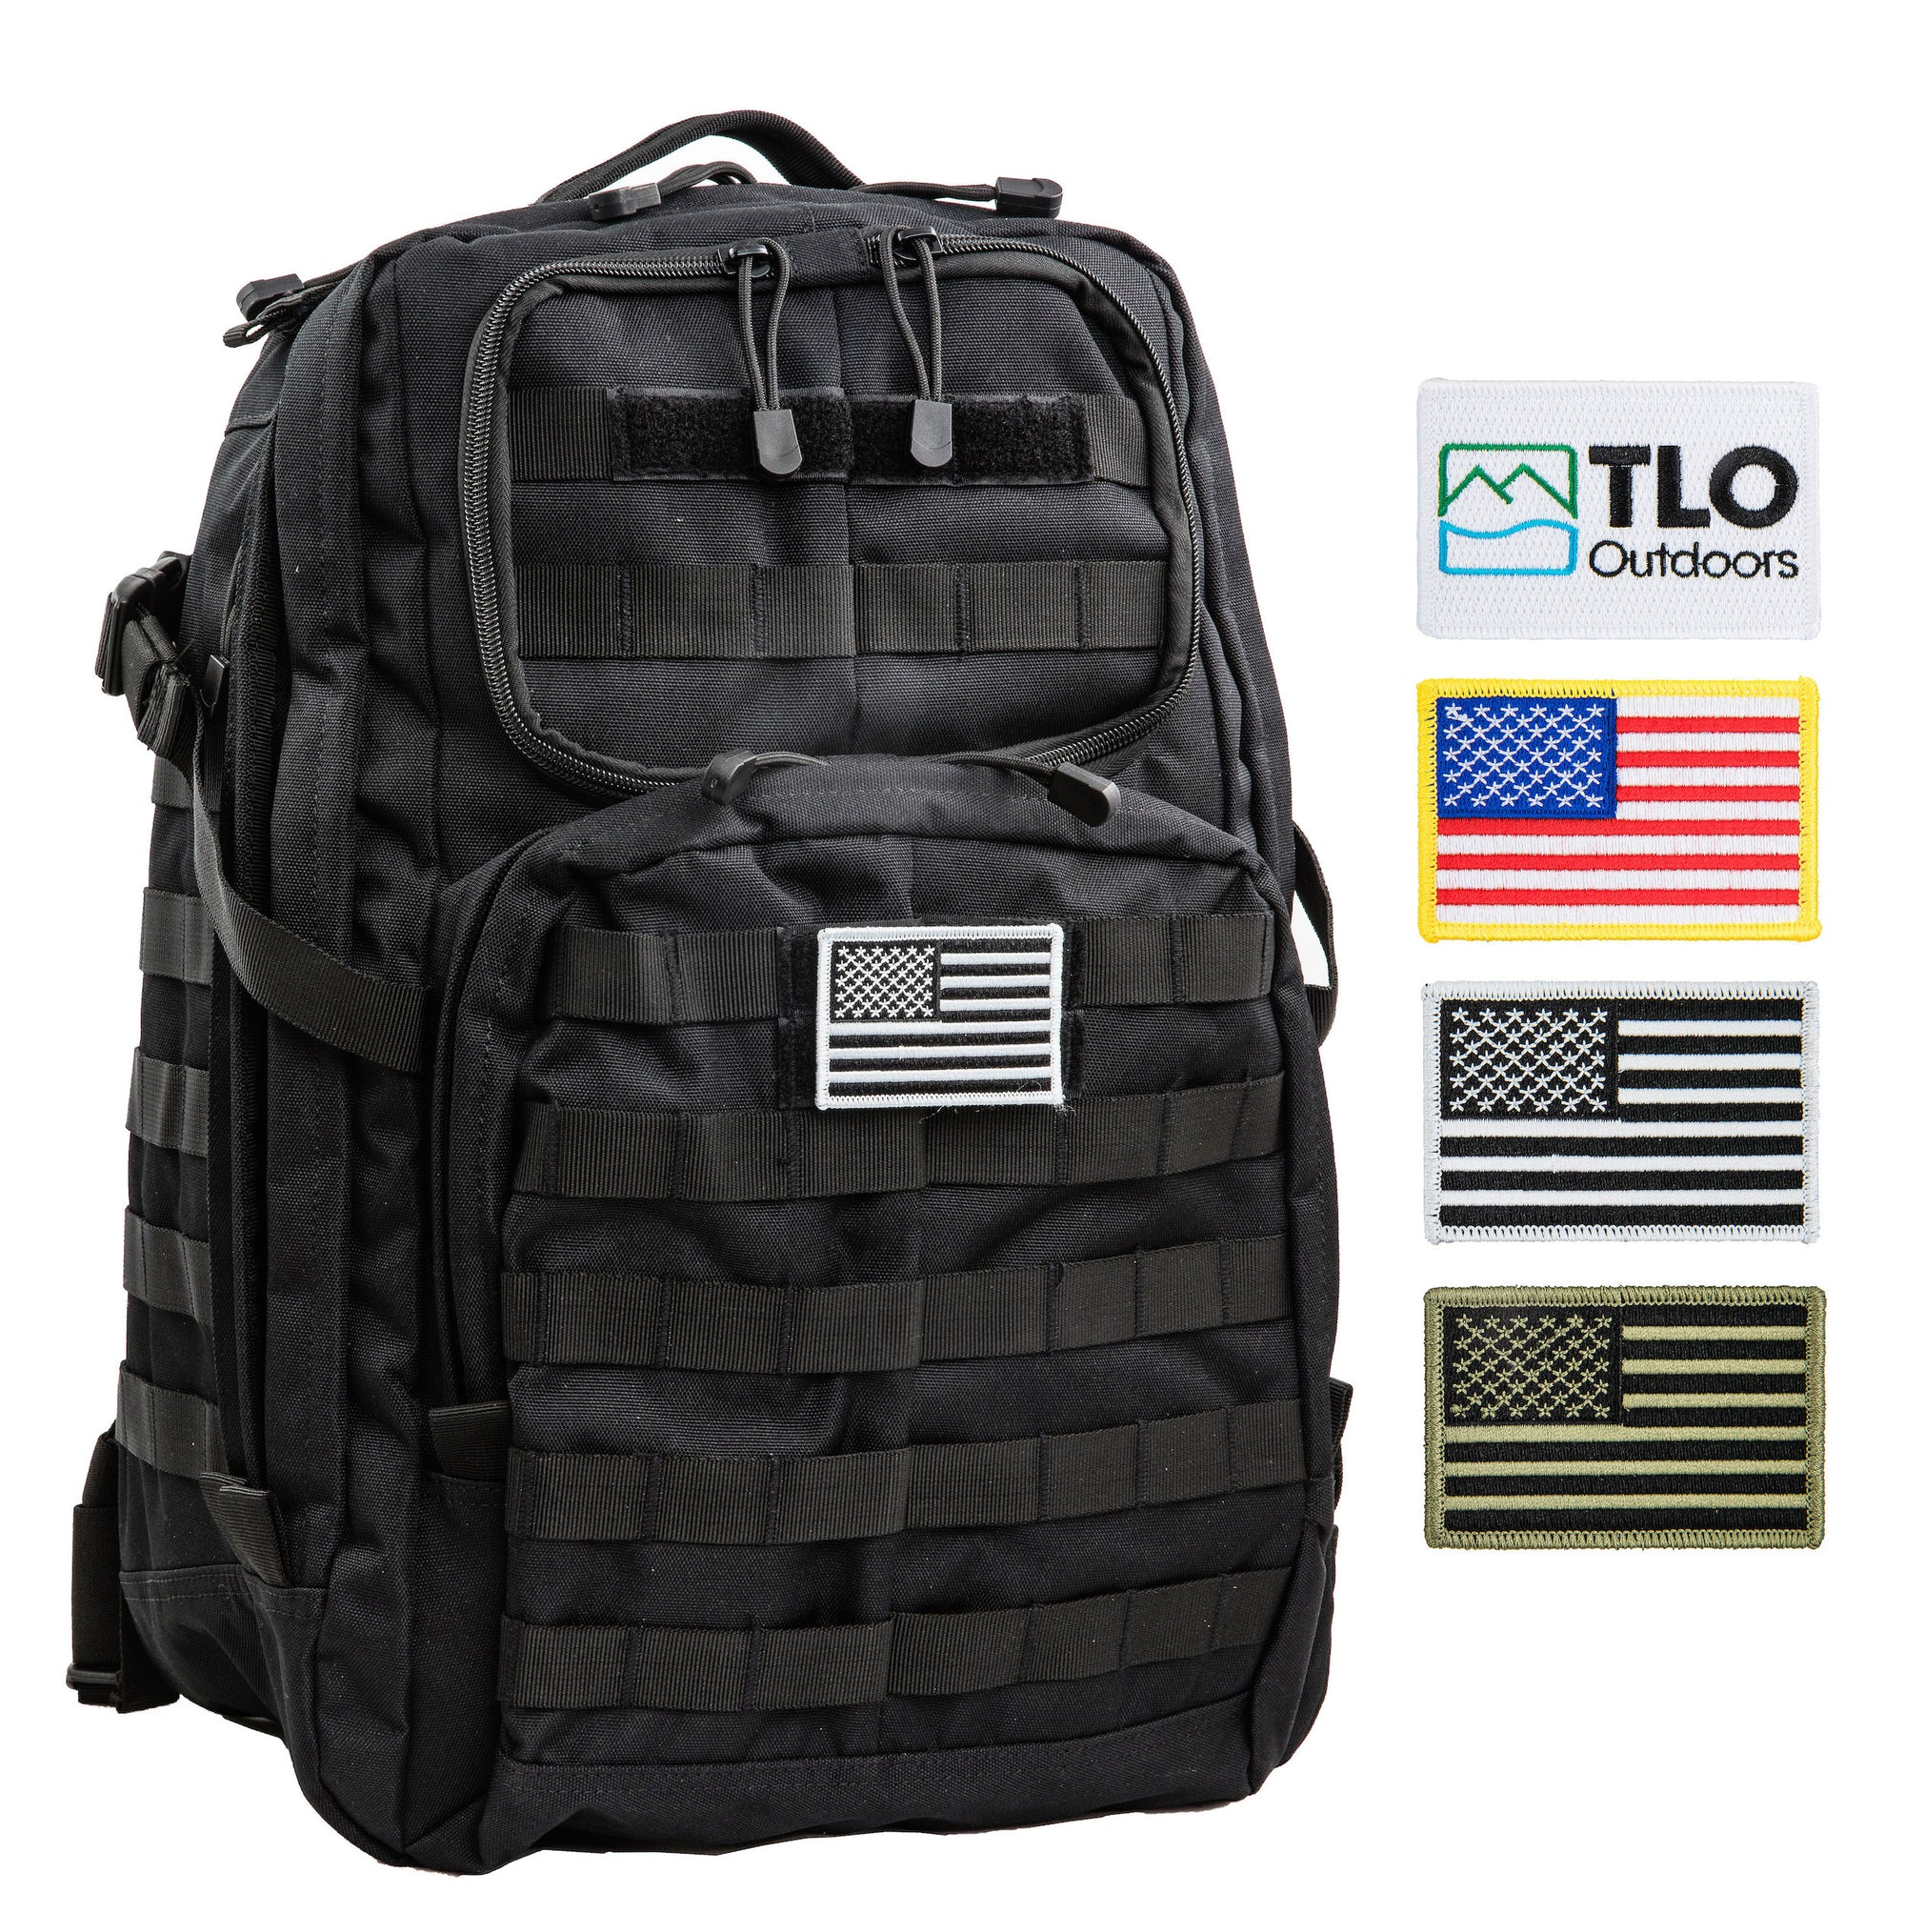 TLO Outdoors TacPack Tactical Backpack with Flag Patches